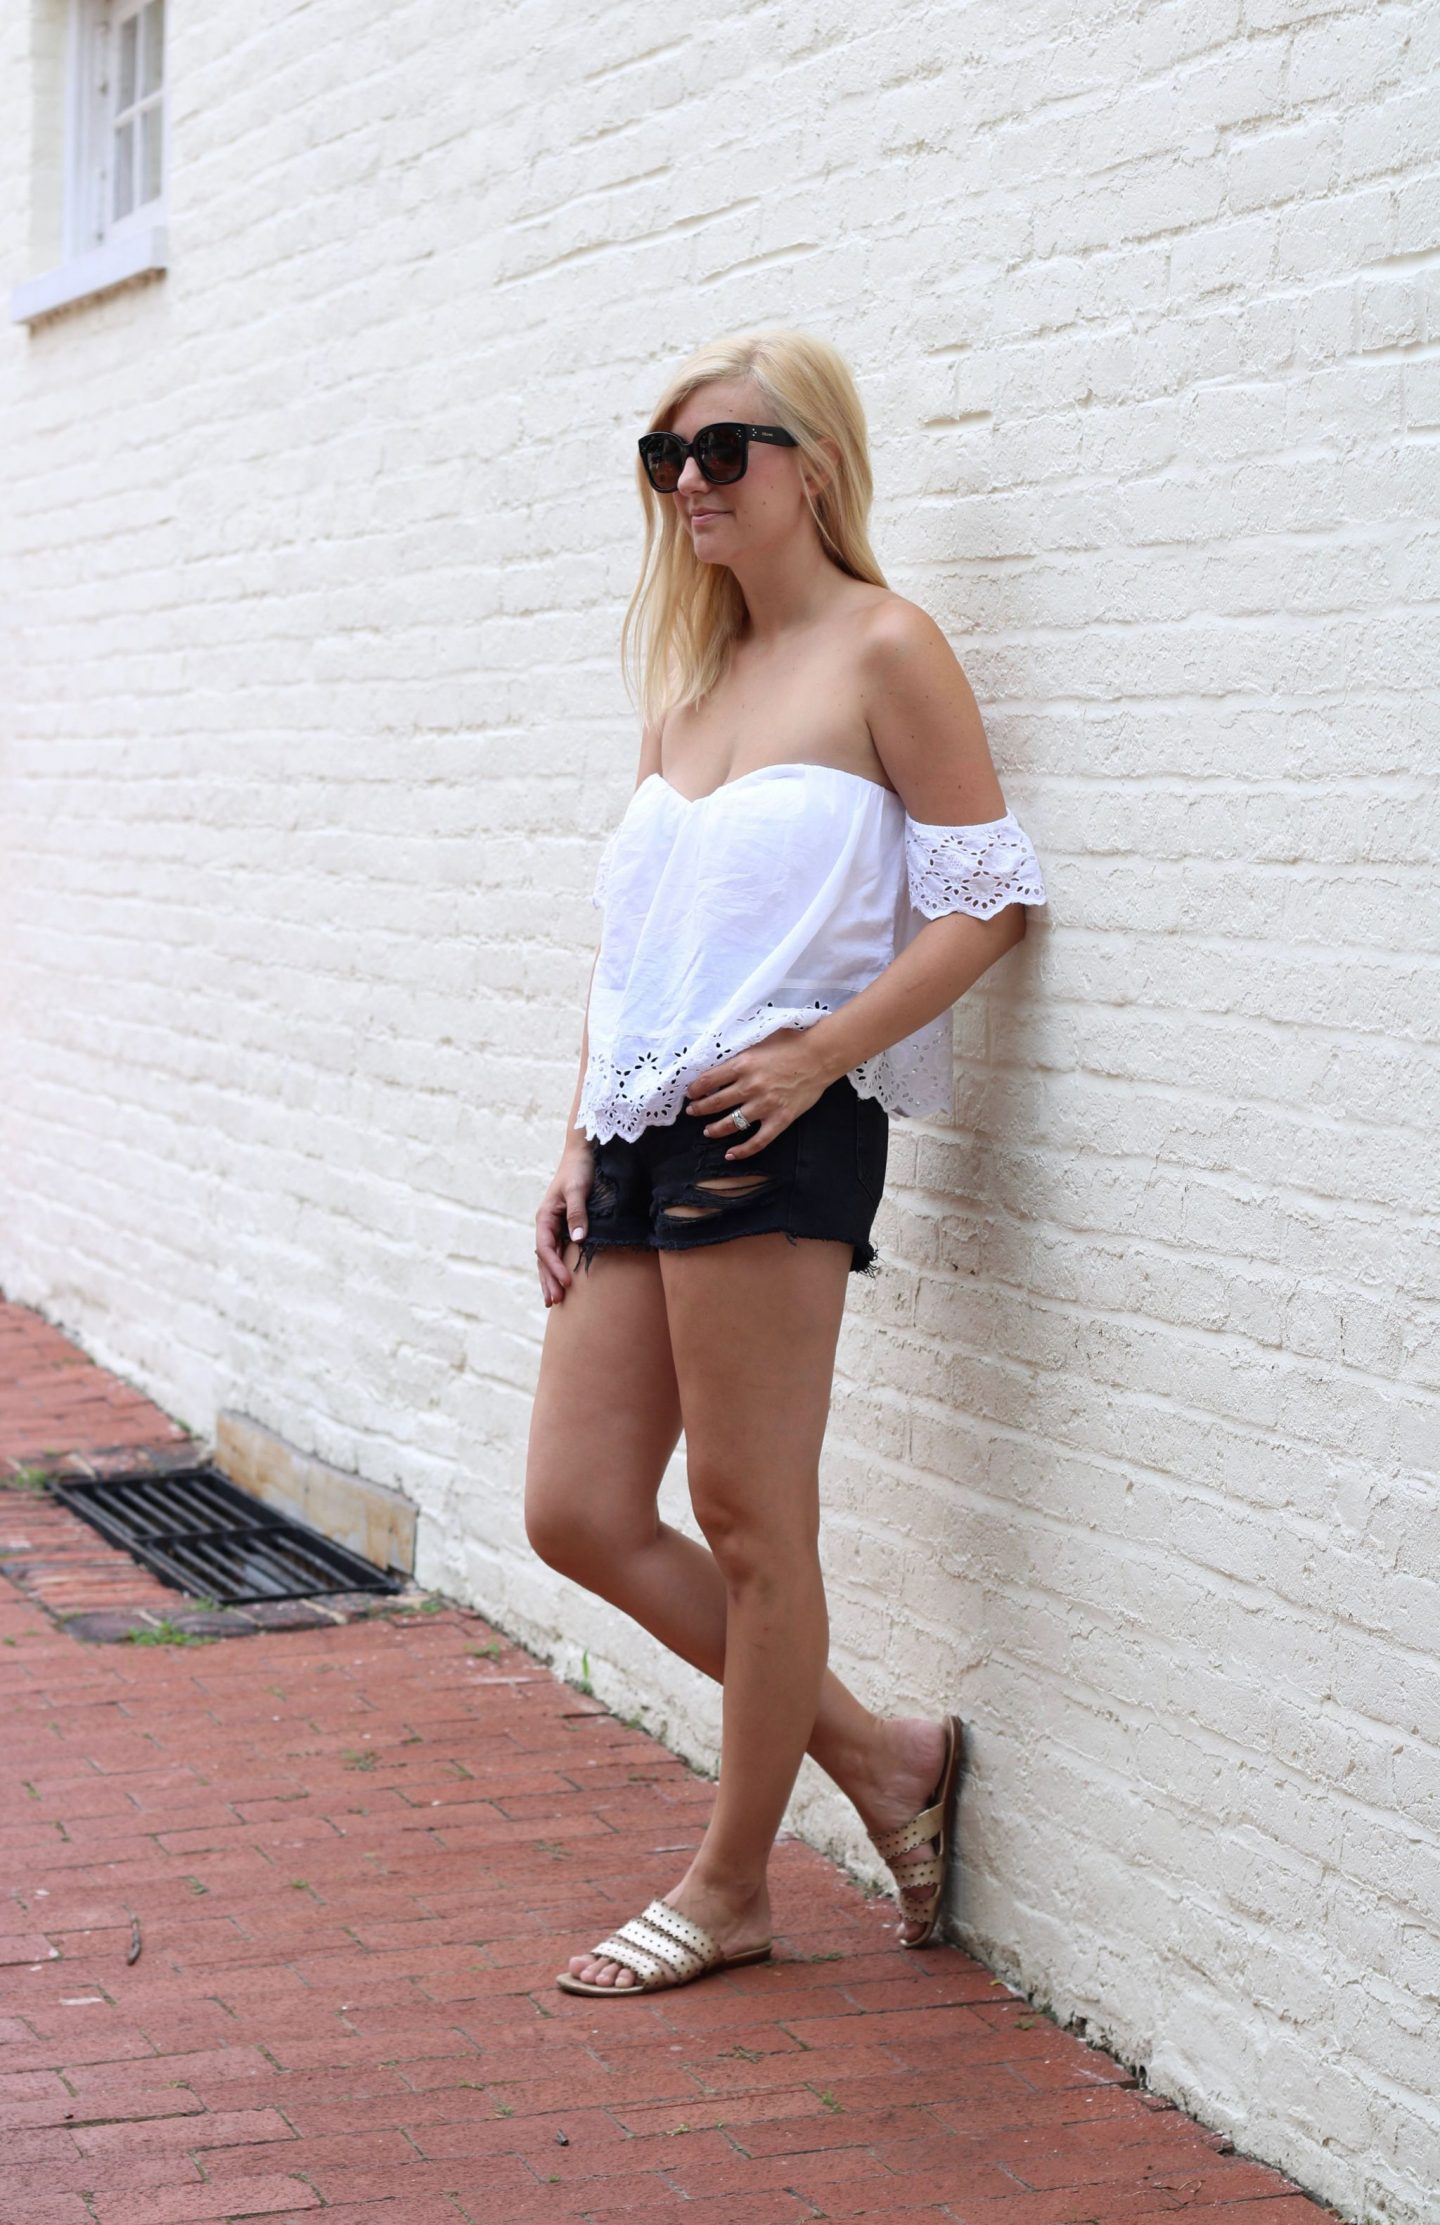 kate spade slide sandals, nordstrom bp, topshop distressed shorts, celine audrey sunglasses